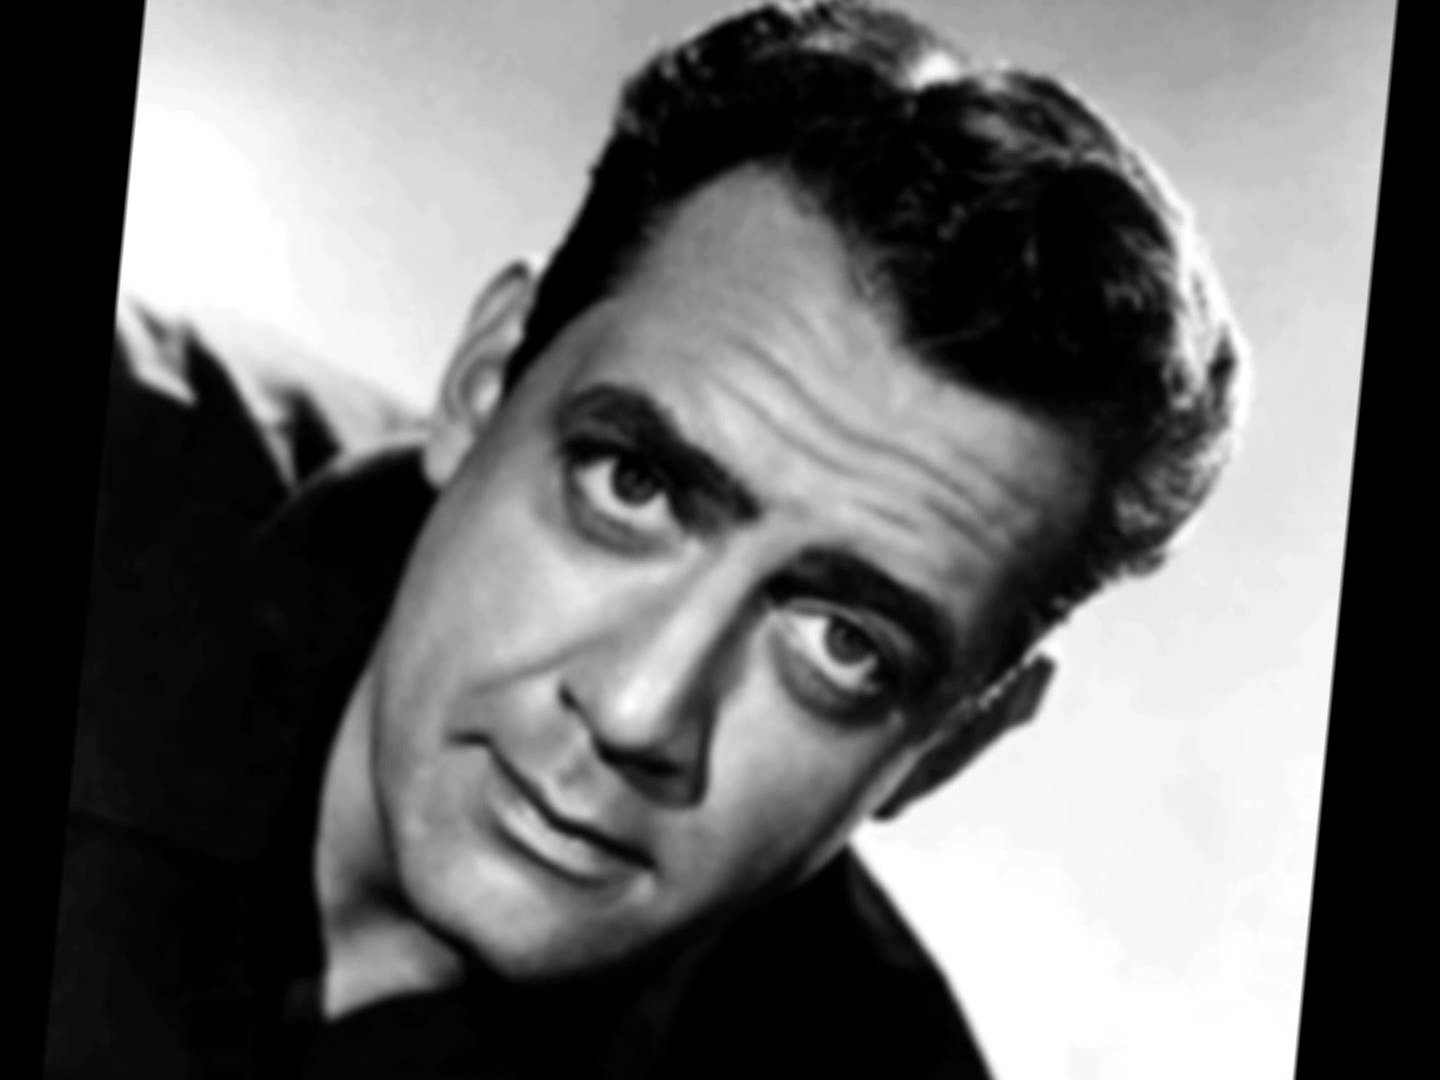 REMEMBER CANADIAN ACTOR RAYMOND BURR